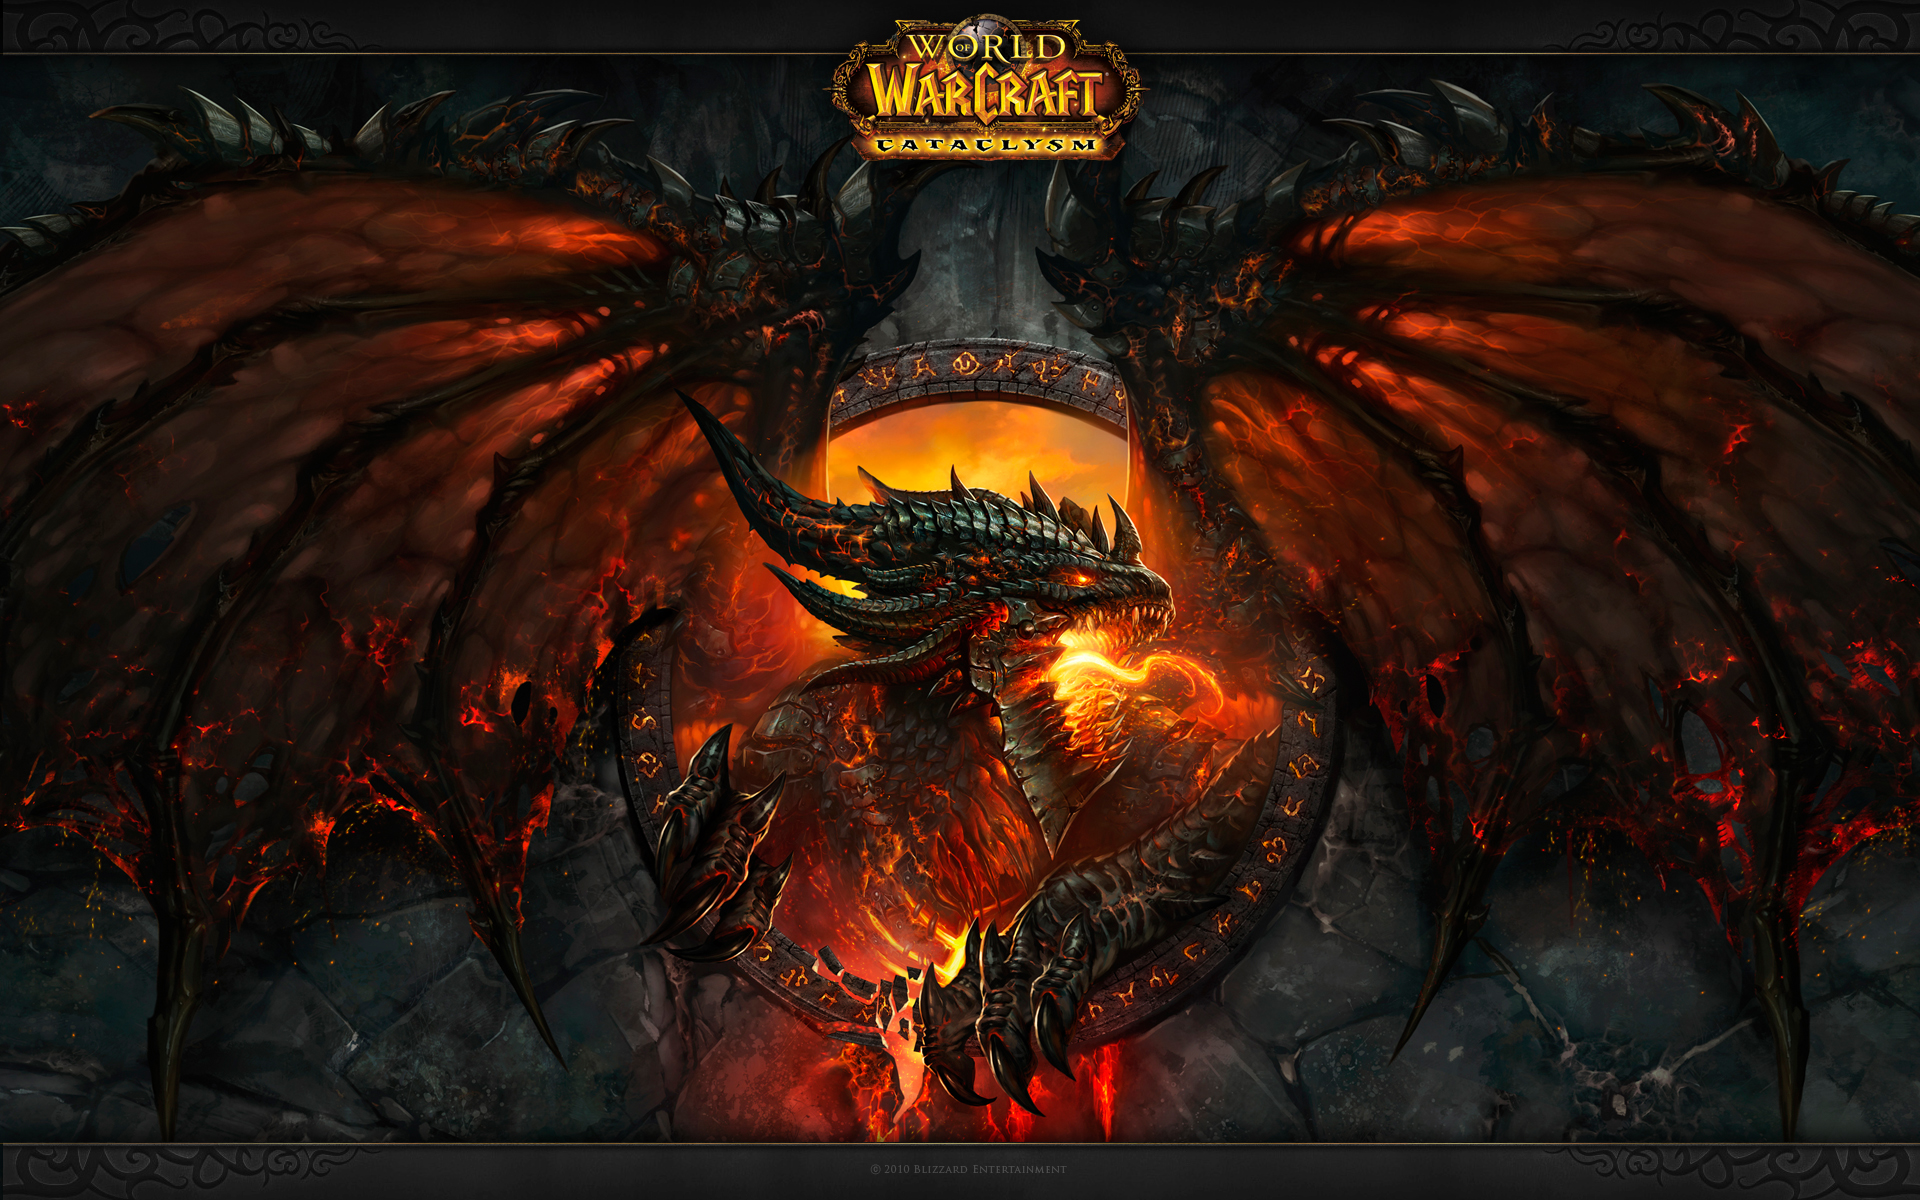 World of Warcraft Cataclysm 1657.23 Kb